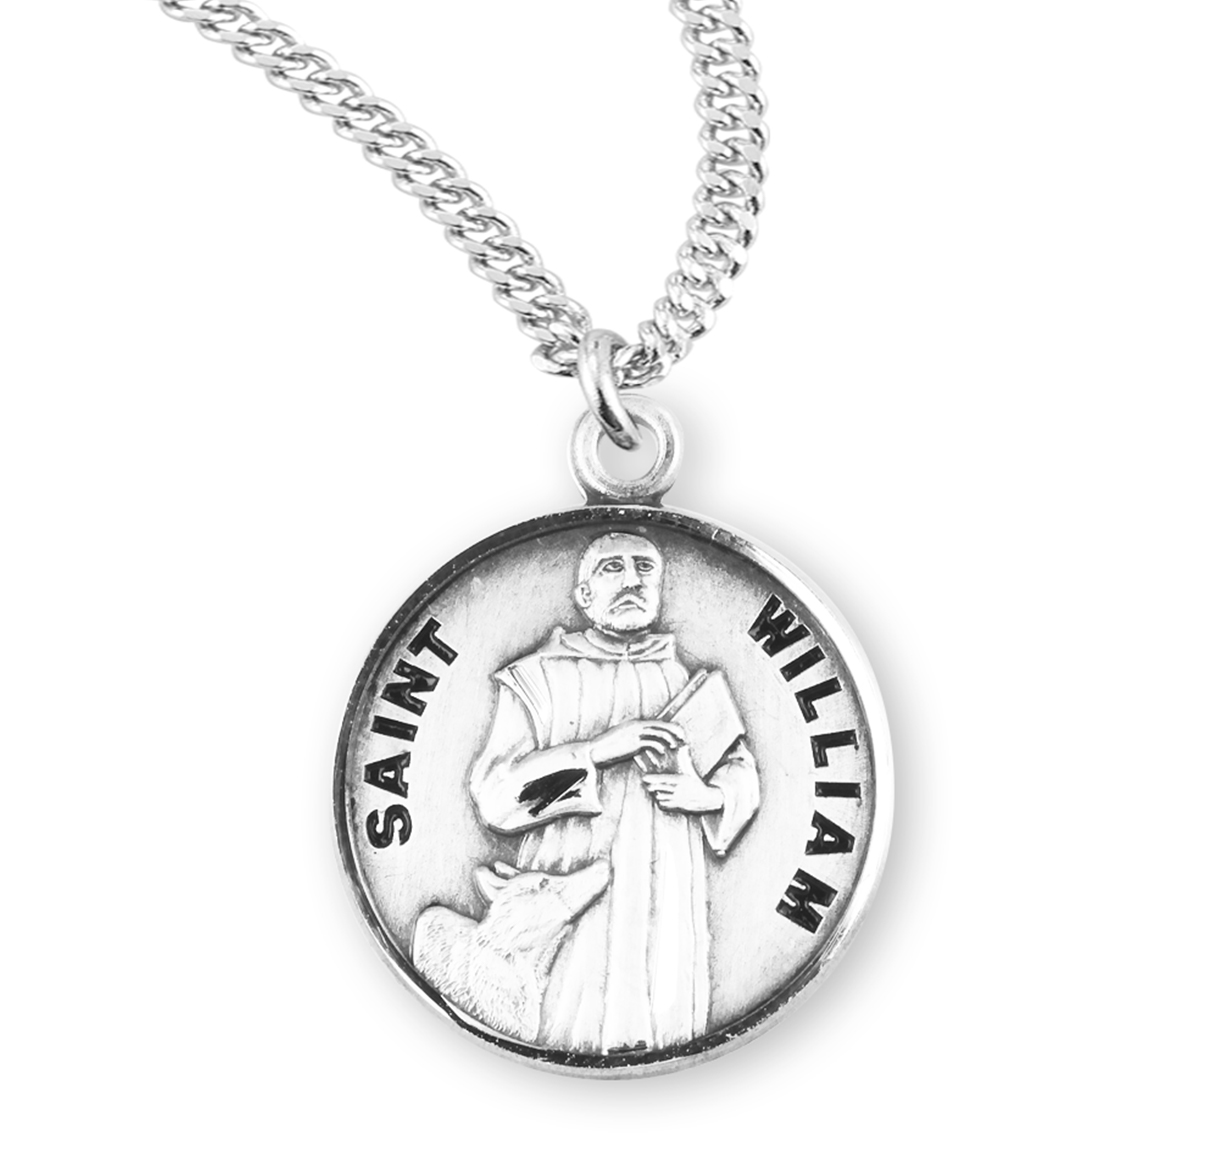 9996fd249d7 ... Patron Saint of Adopted Children. HMH Religious St William Sterling  Silver Medal Necklace